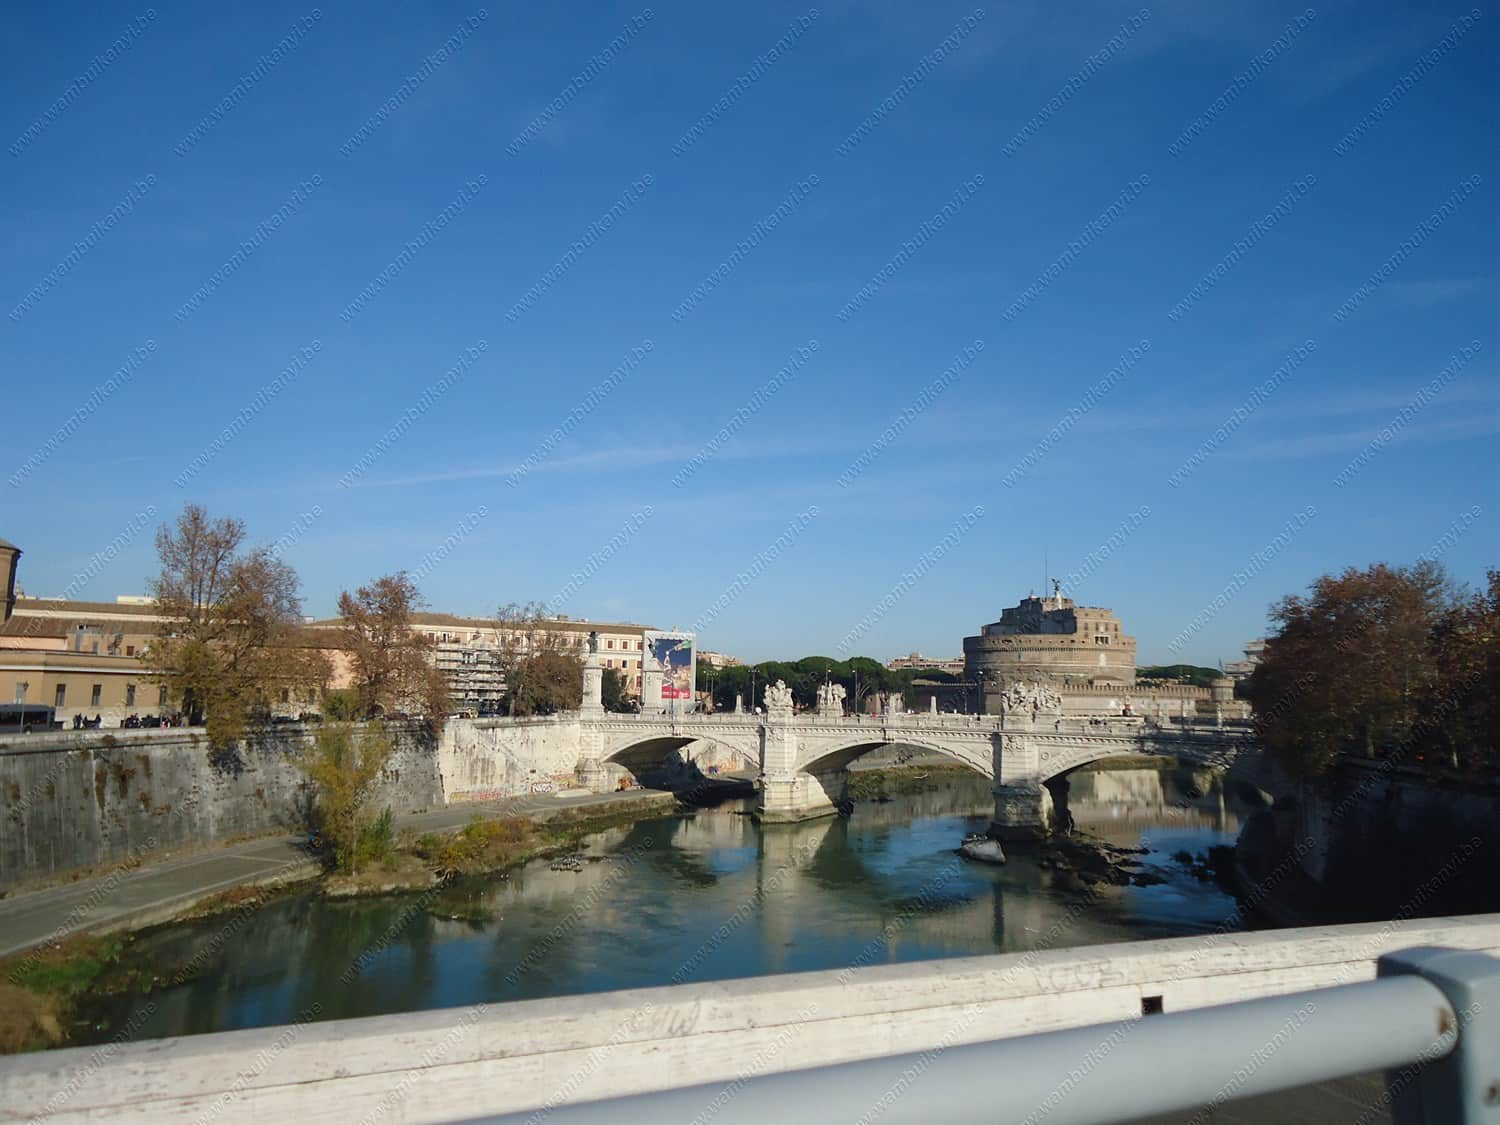 Castel Sant' Angelo Museum in Rome